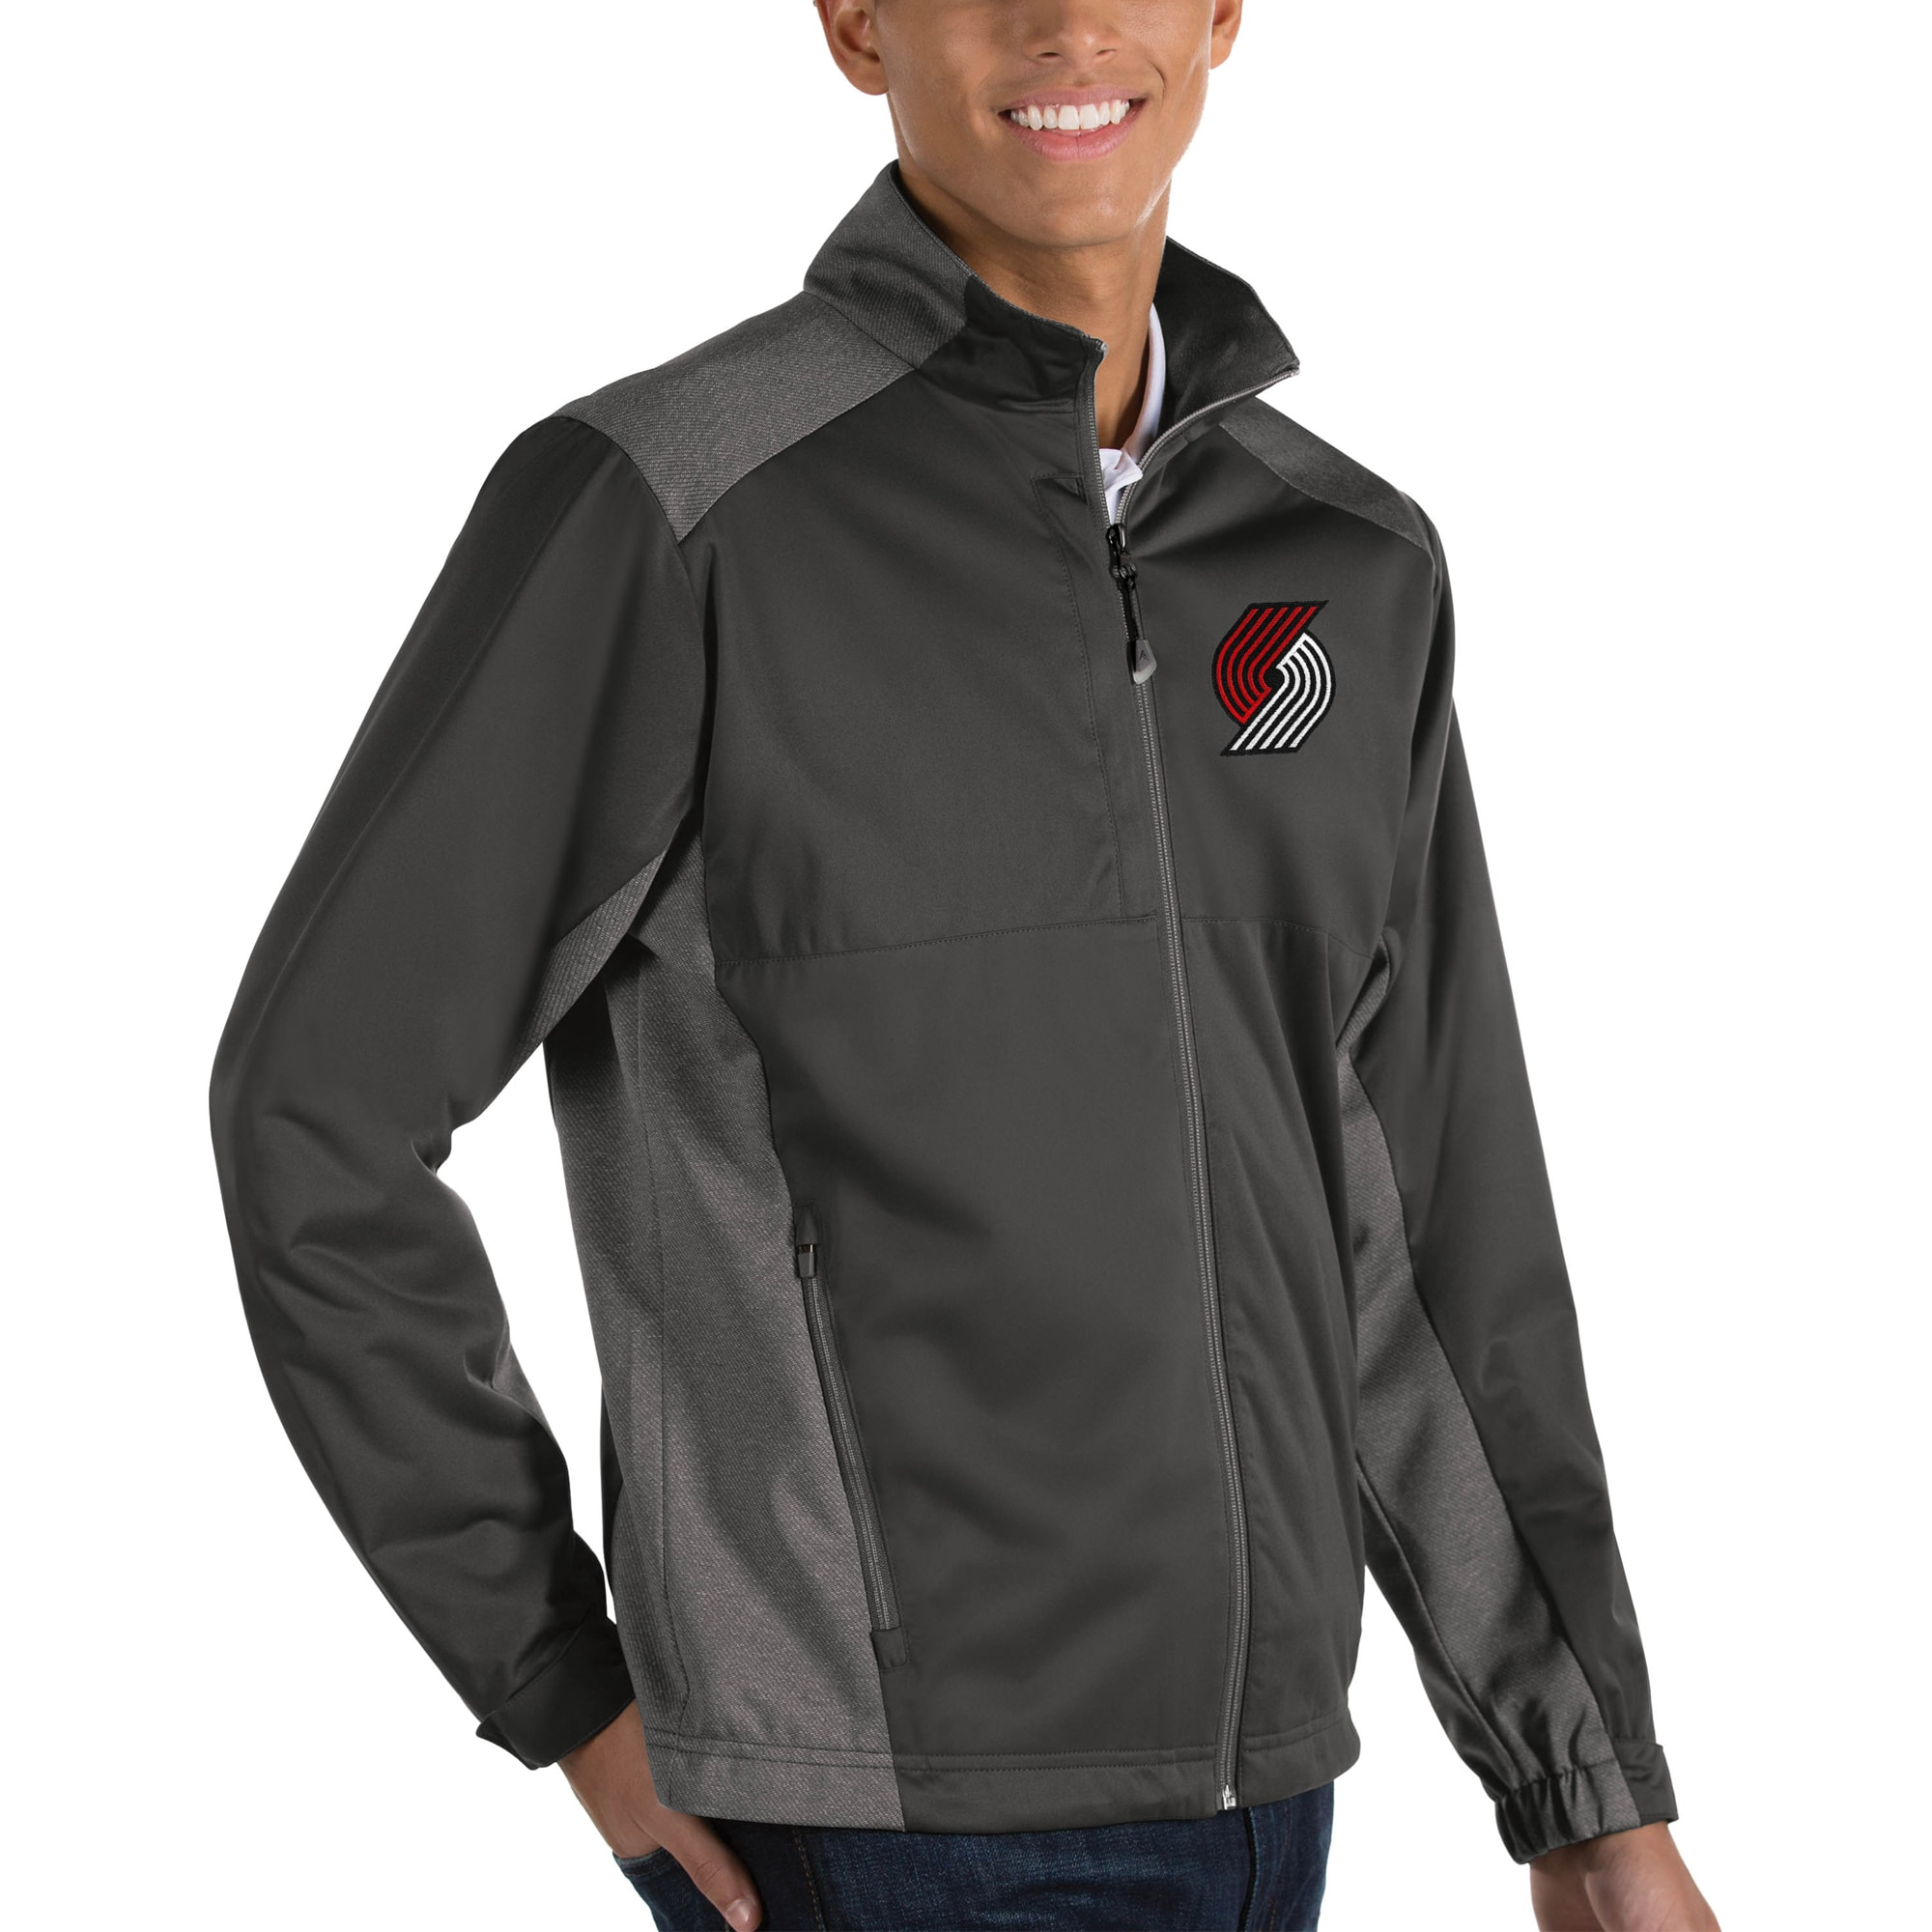 Portland Trail Blazers Antigua Revolve Big & Tall Full-Zip Jacket - Charcoal